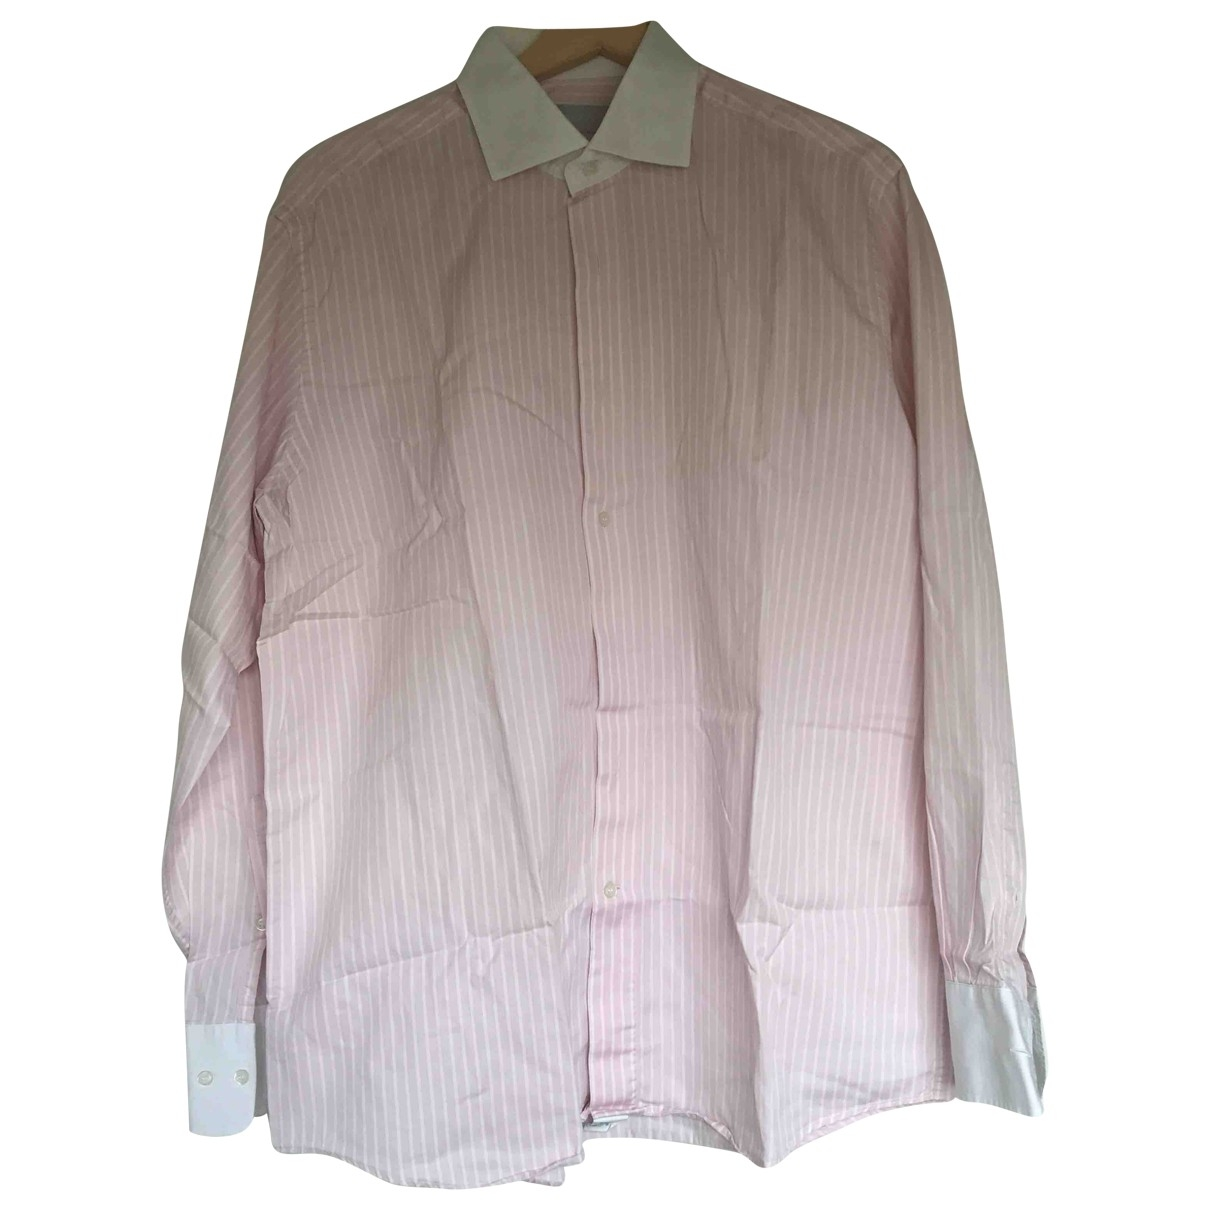 Nina Ricci \N Pink Cotton Shirts for Men 16.5 UK - US (tour de cou / collar)